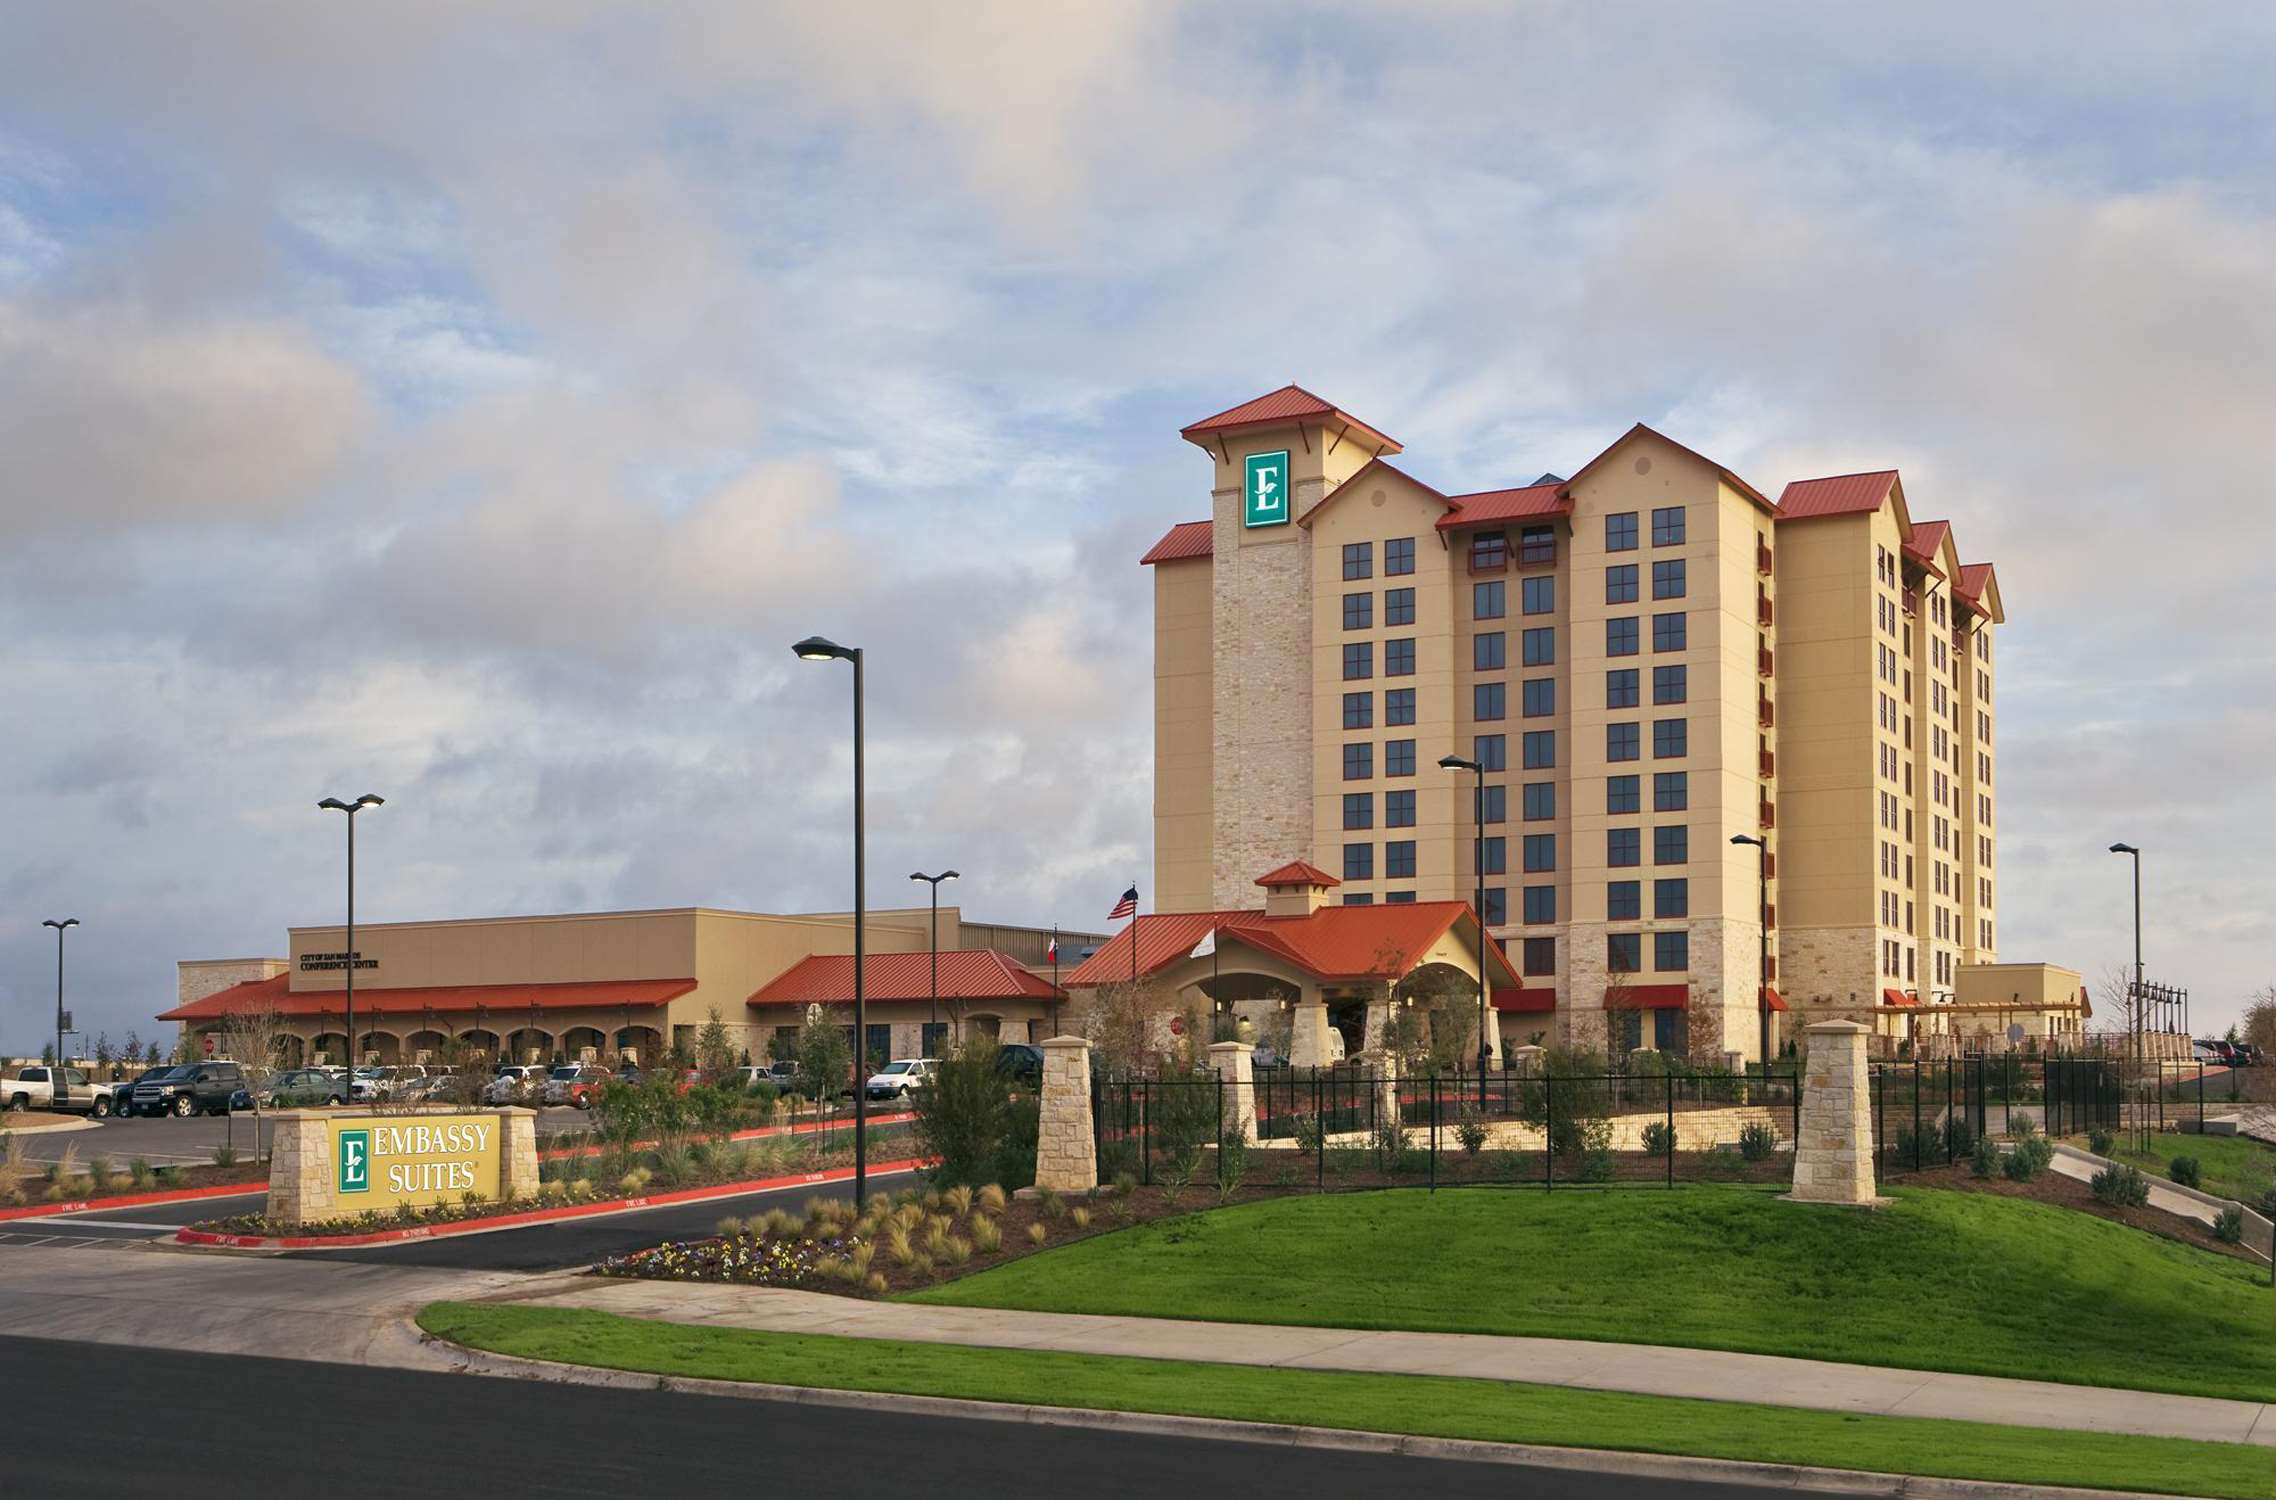 Embassy Suites by Hilton San Marcos Hotel Conference Center & Spa image 1